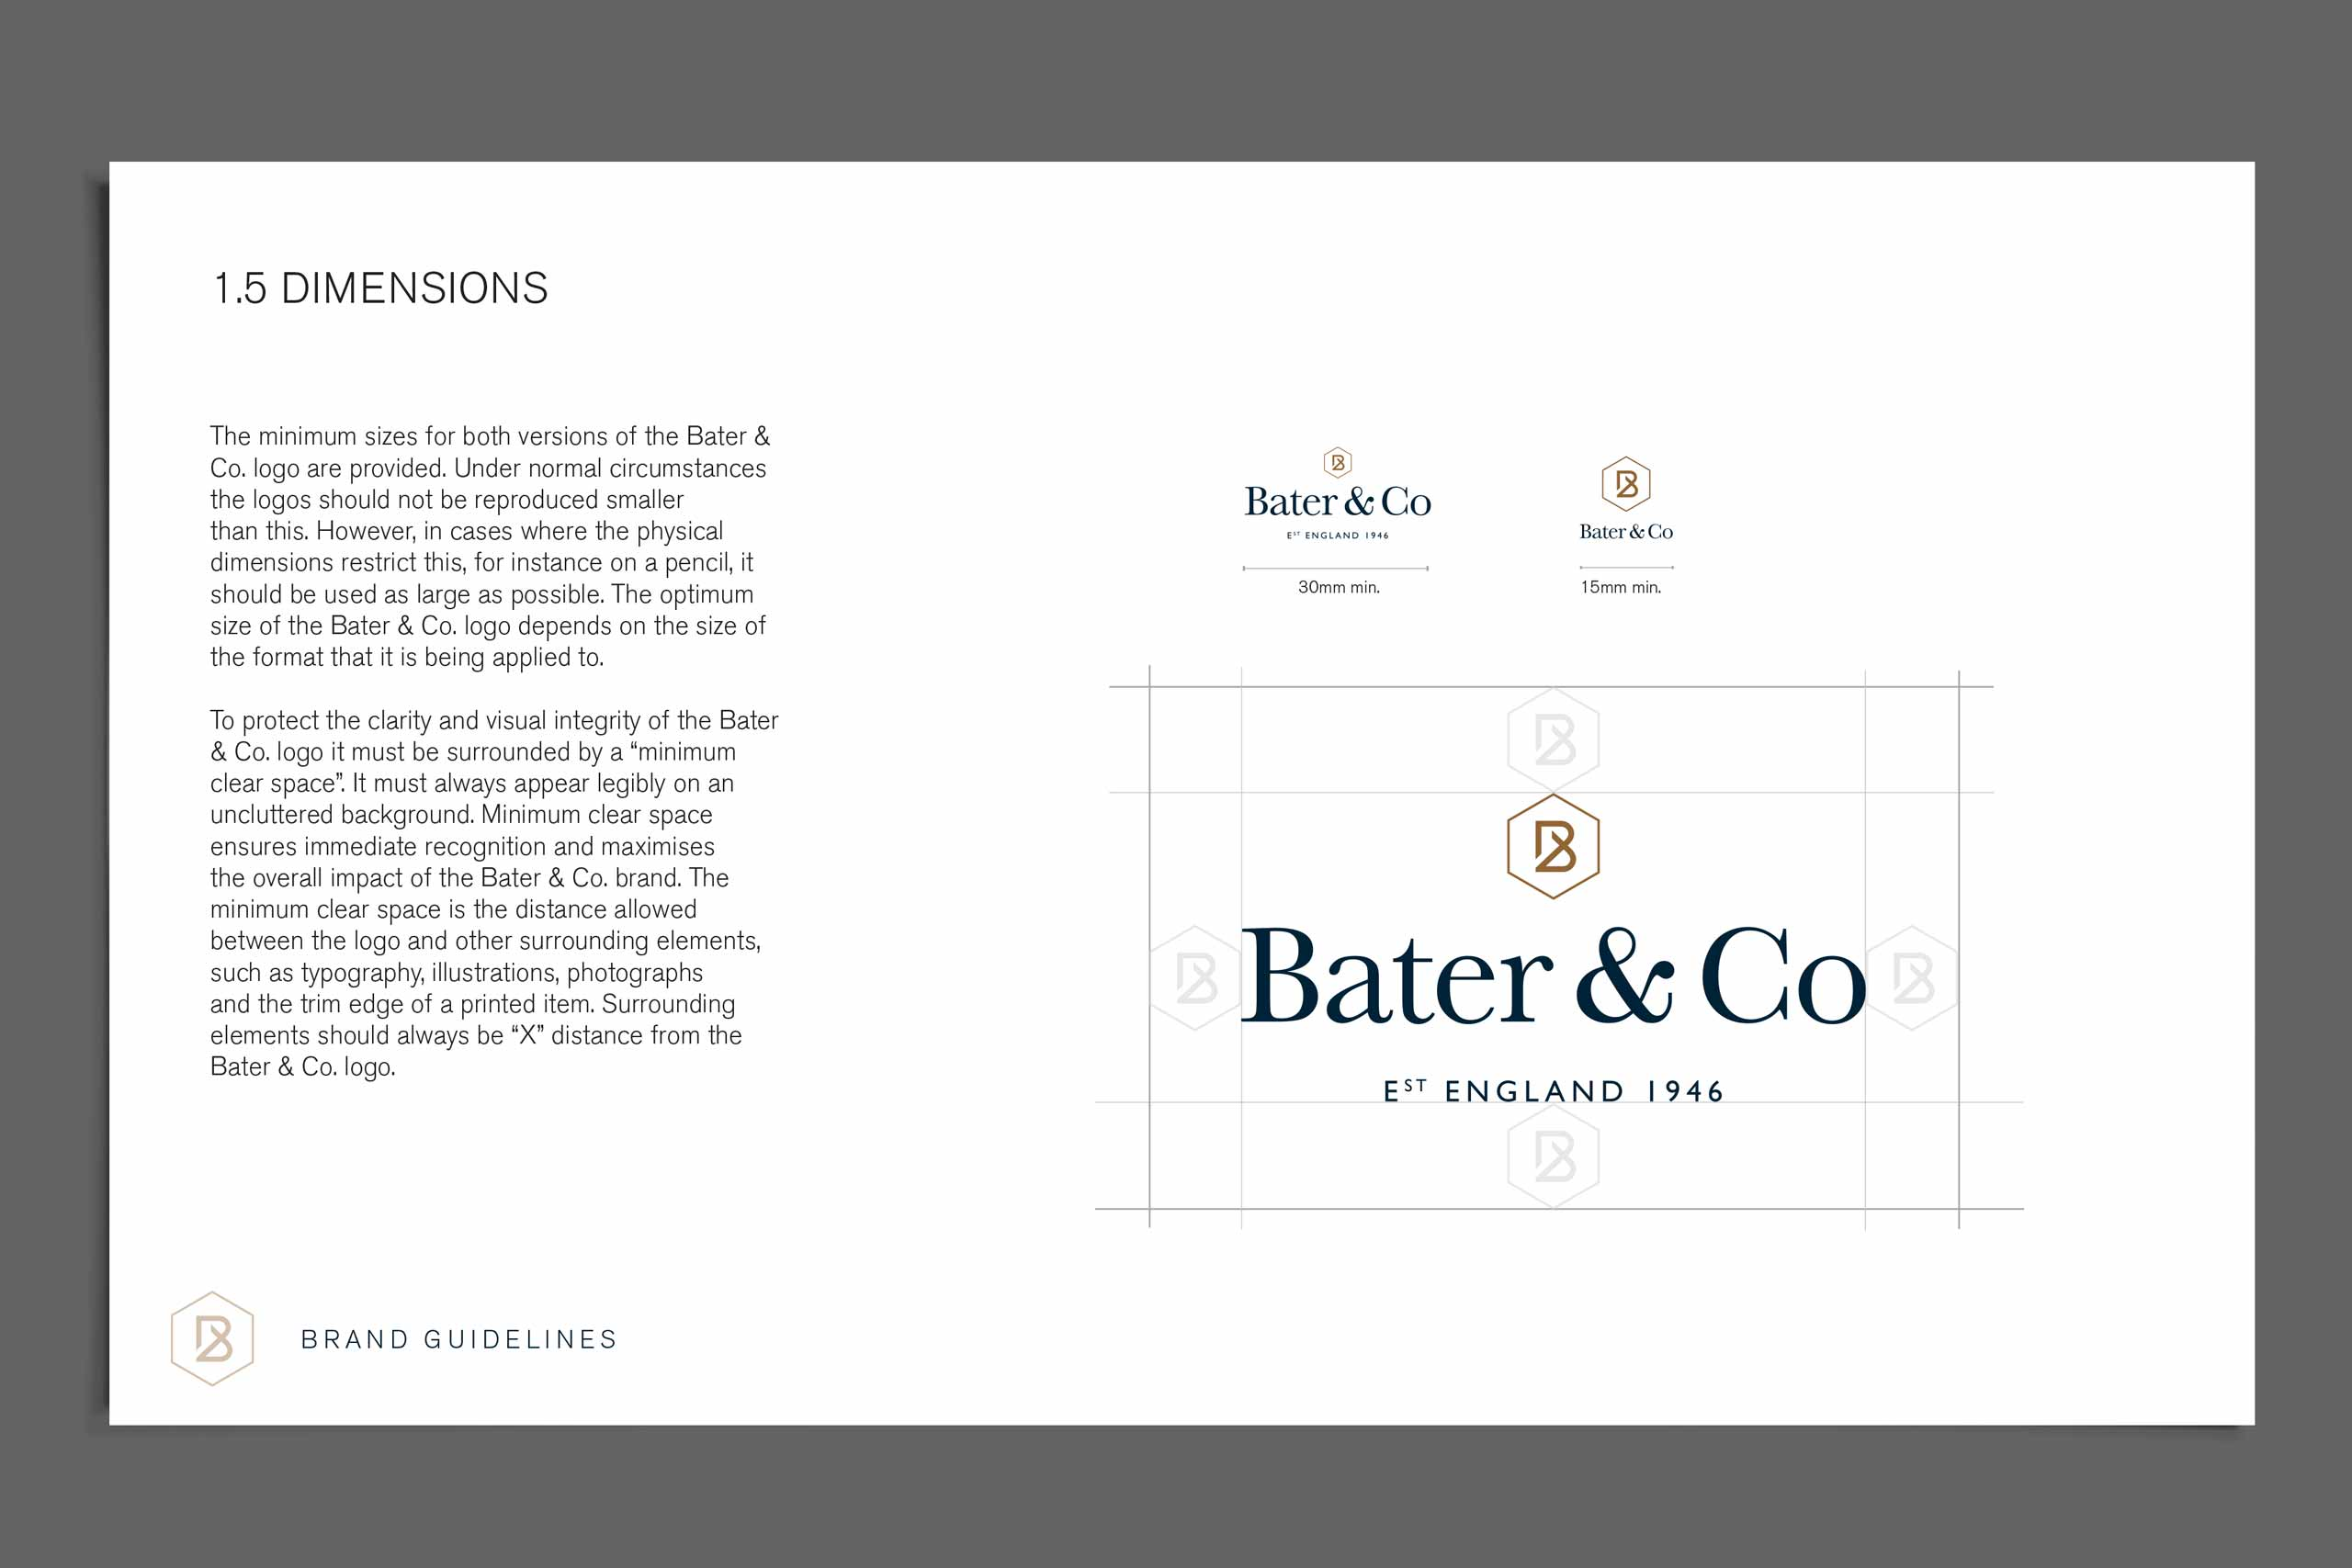 Bater & Co brand identity guidelines